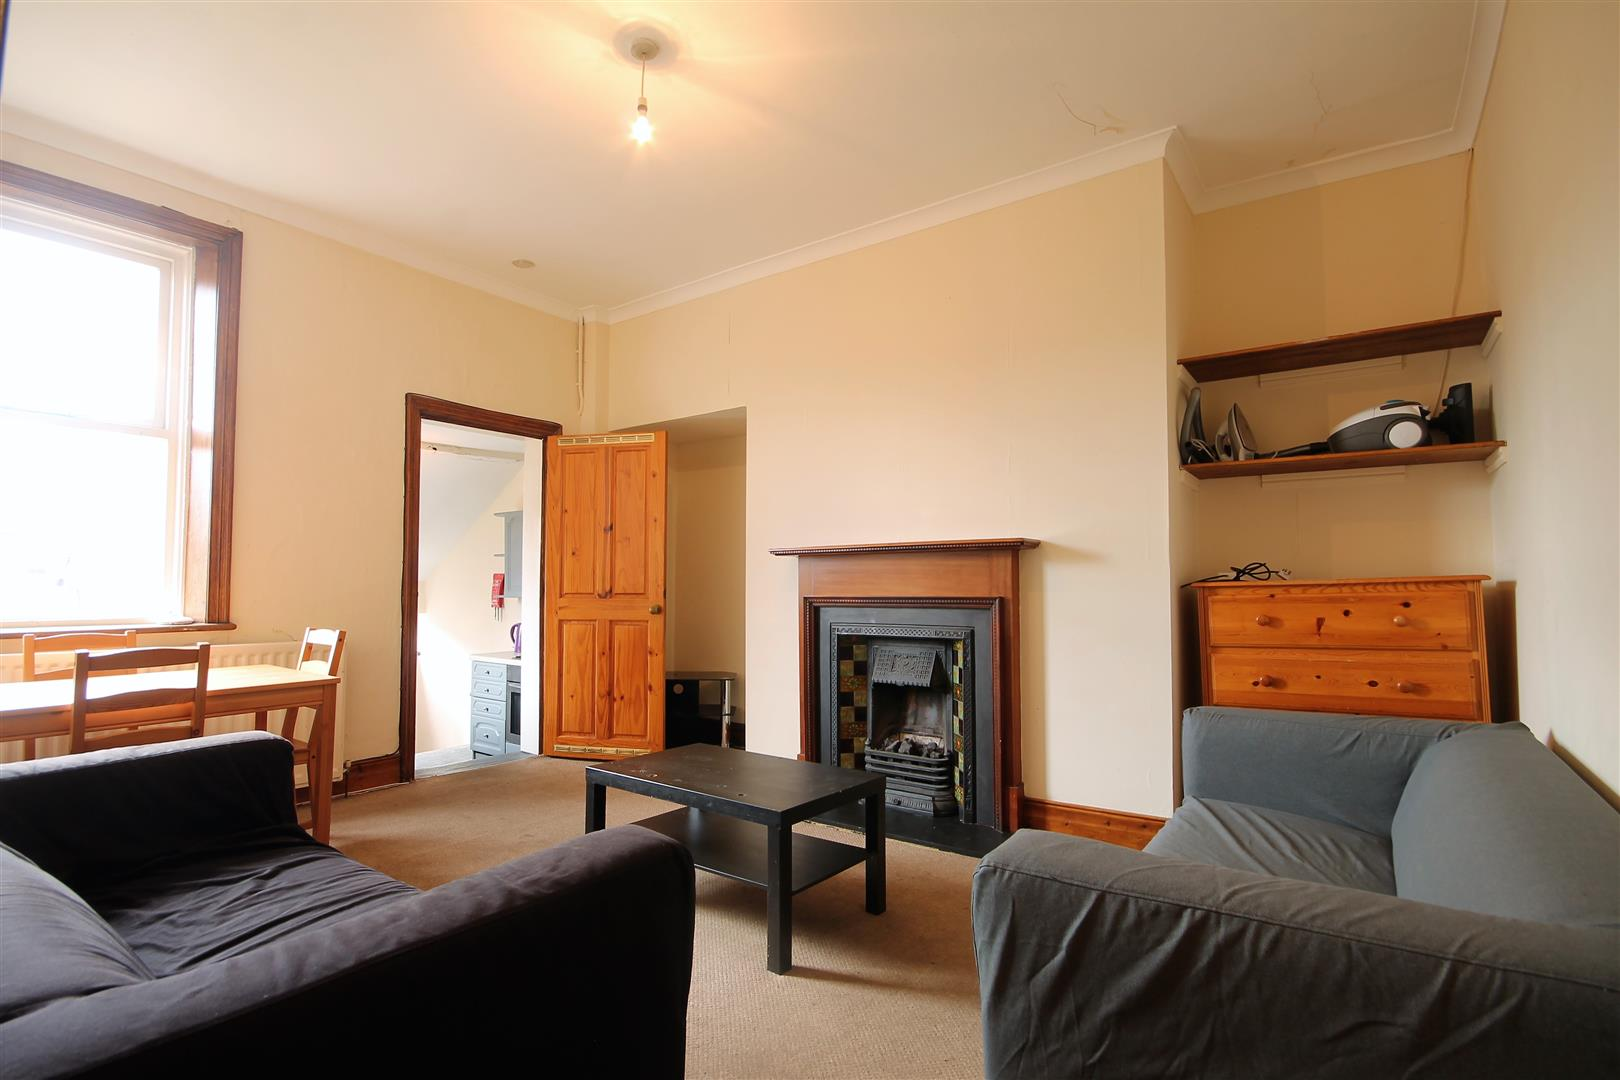 Kelvin Grove Newcastle Upon Tyne, 3 Bedrooms  Flat ,Sold (STC)